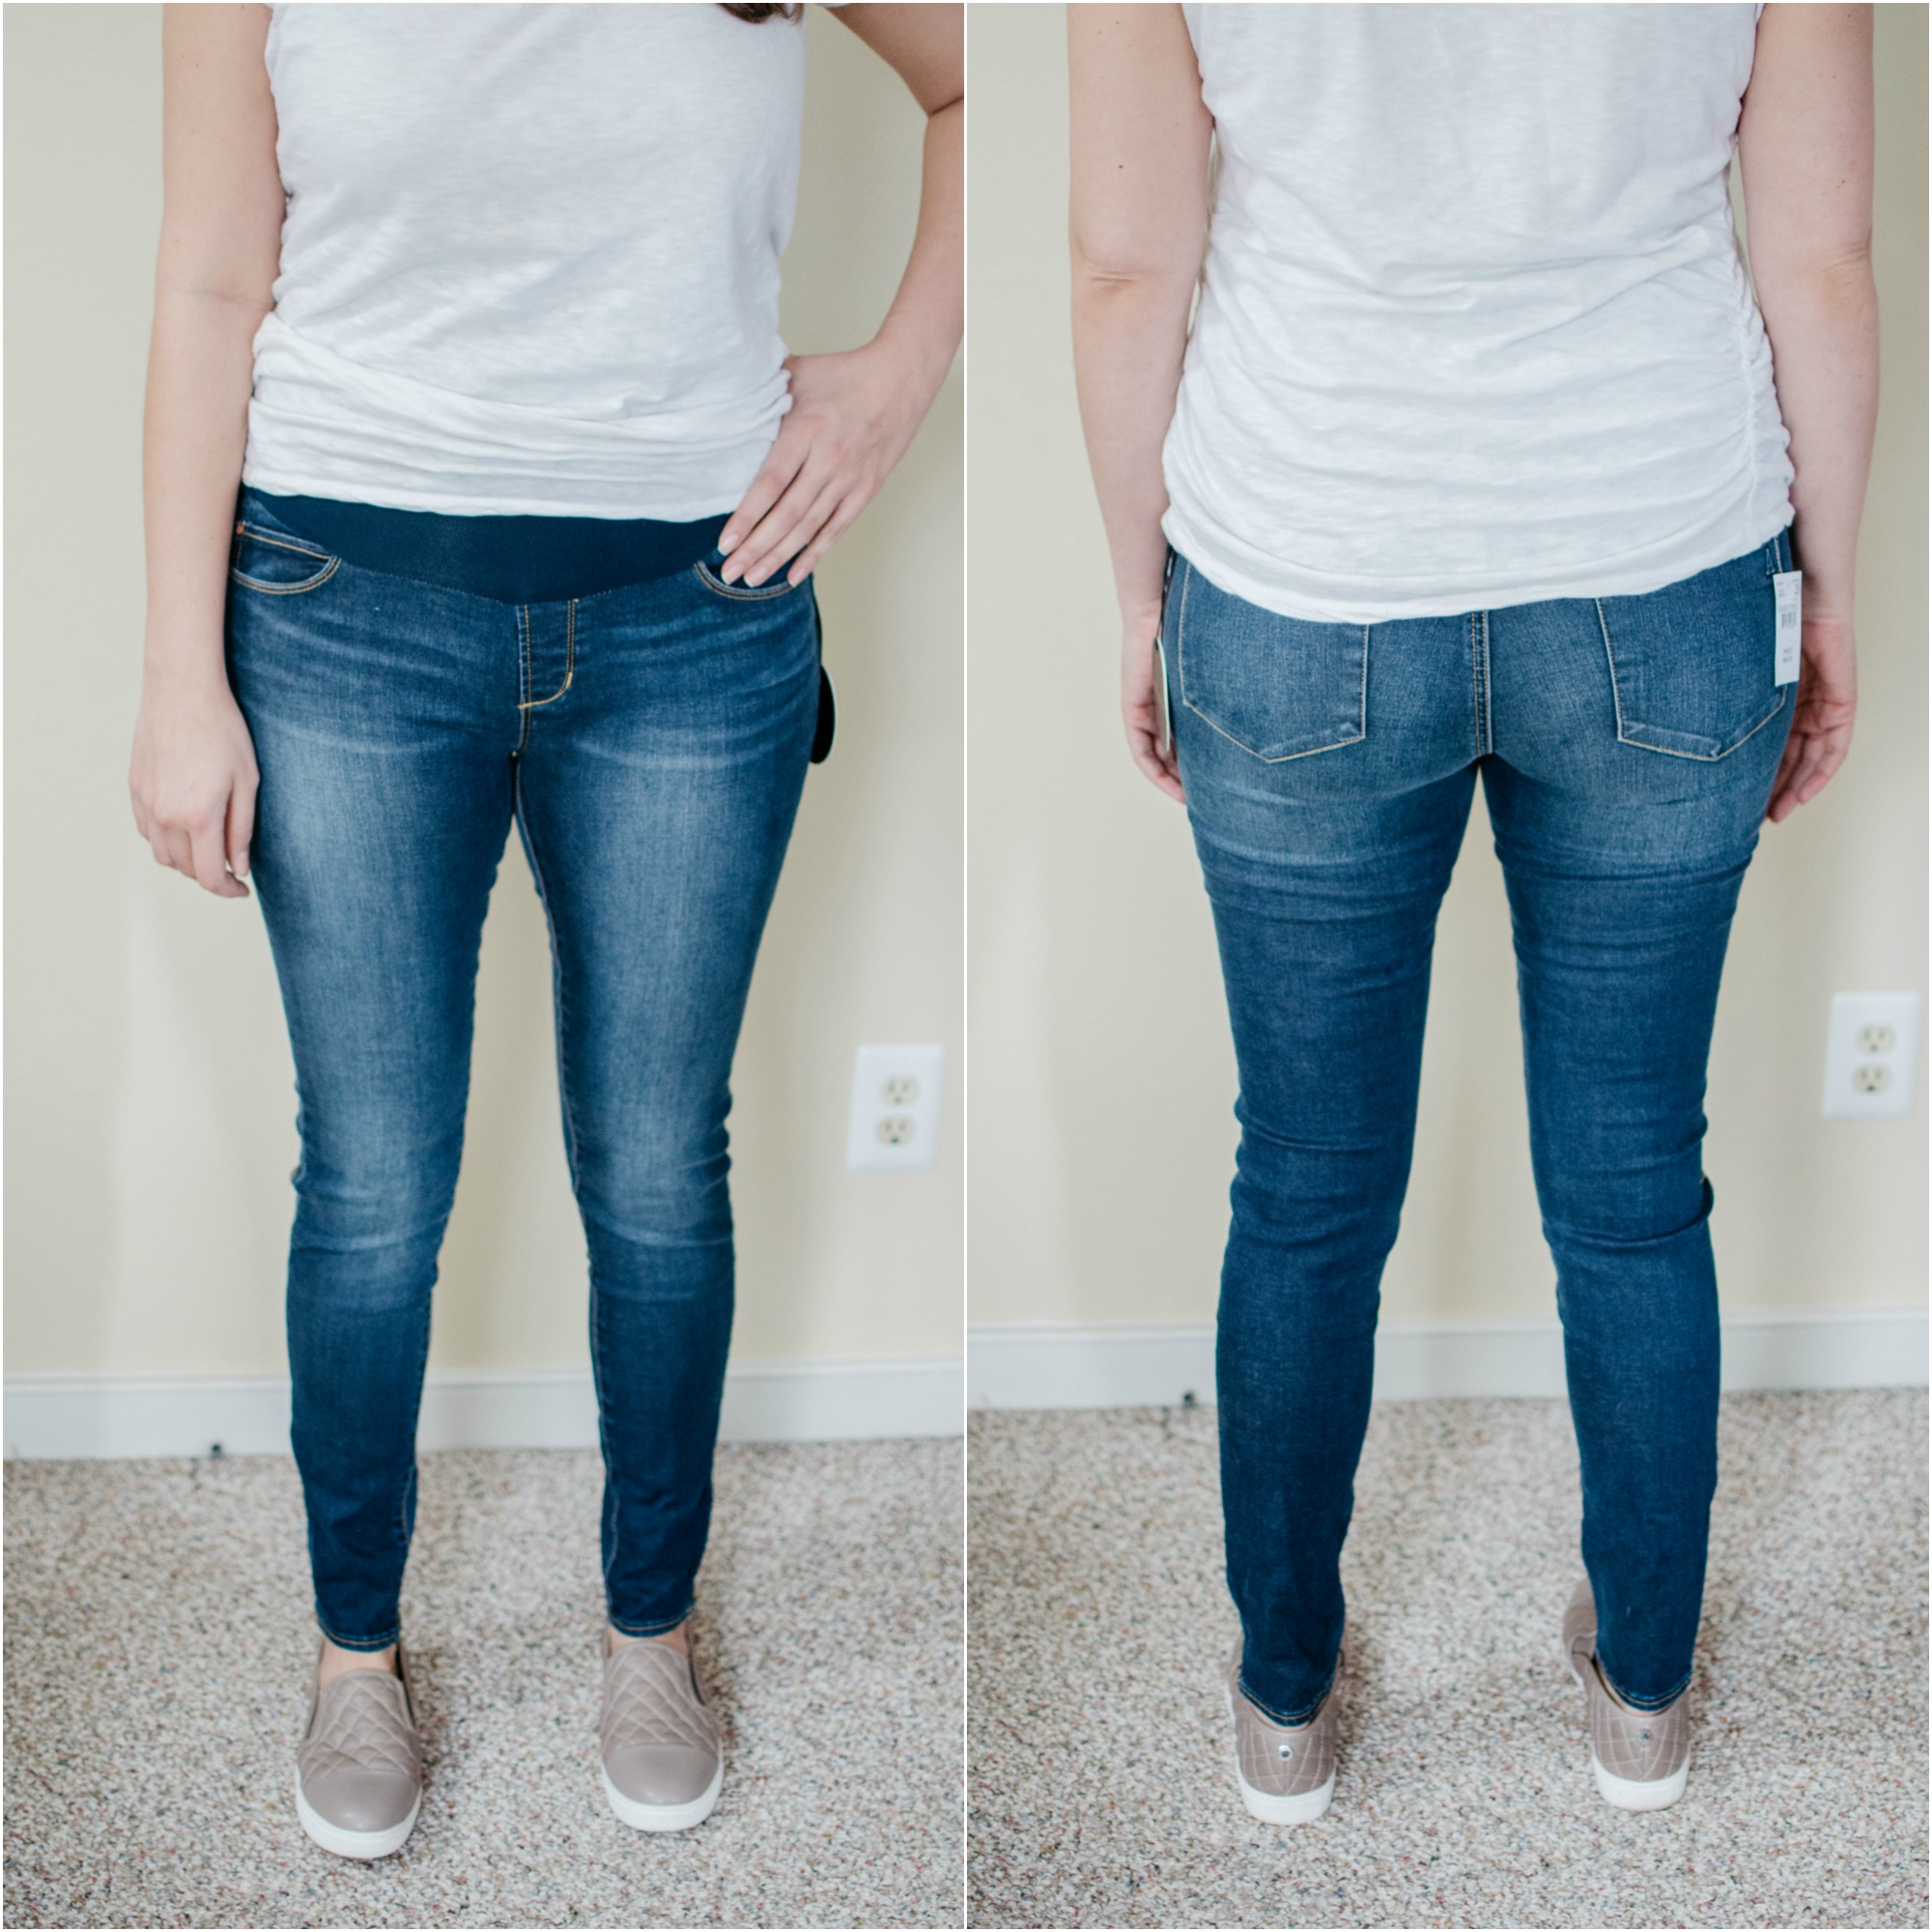 99fc7f1a27f1b Articles of Society maternity jeans - best designer maternity jeans review  | See reviews of over